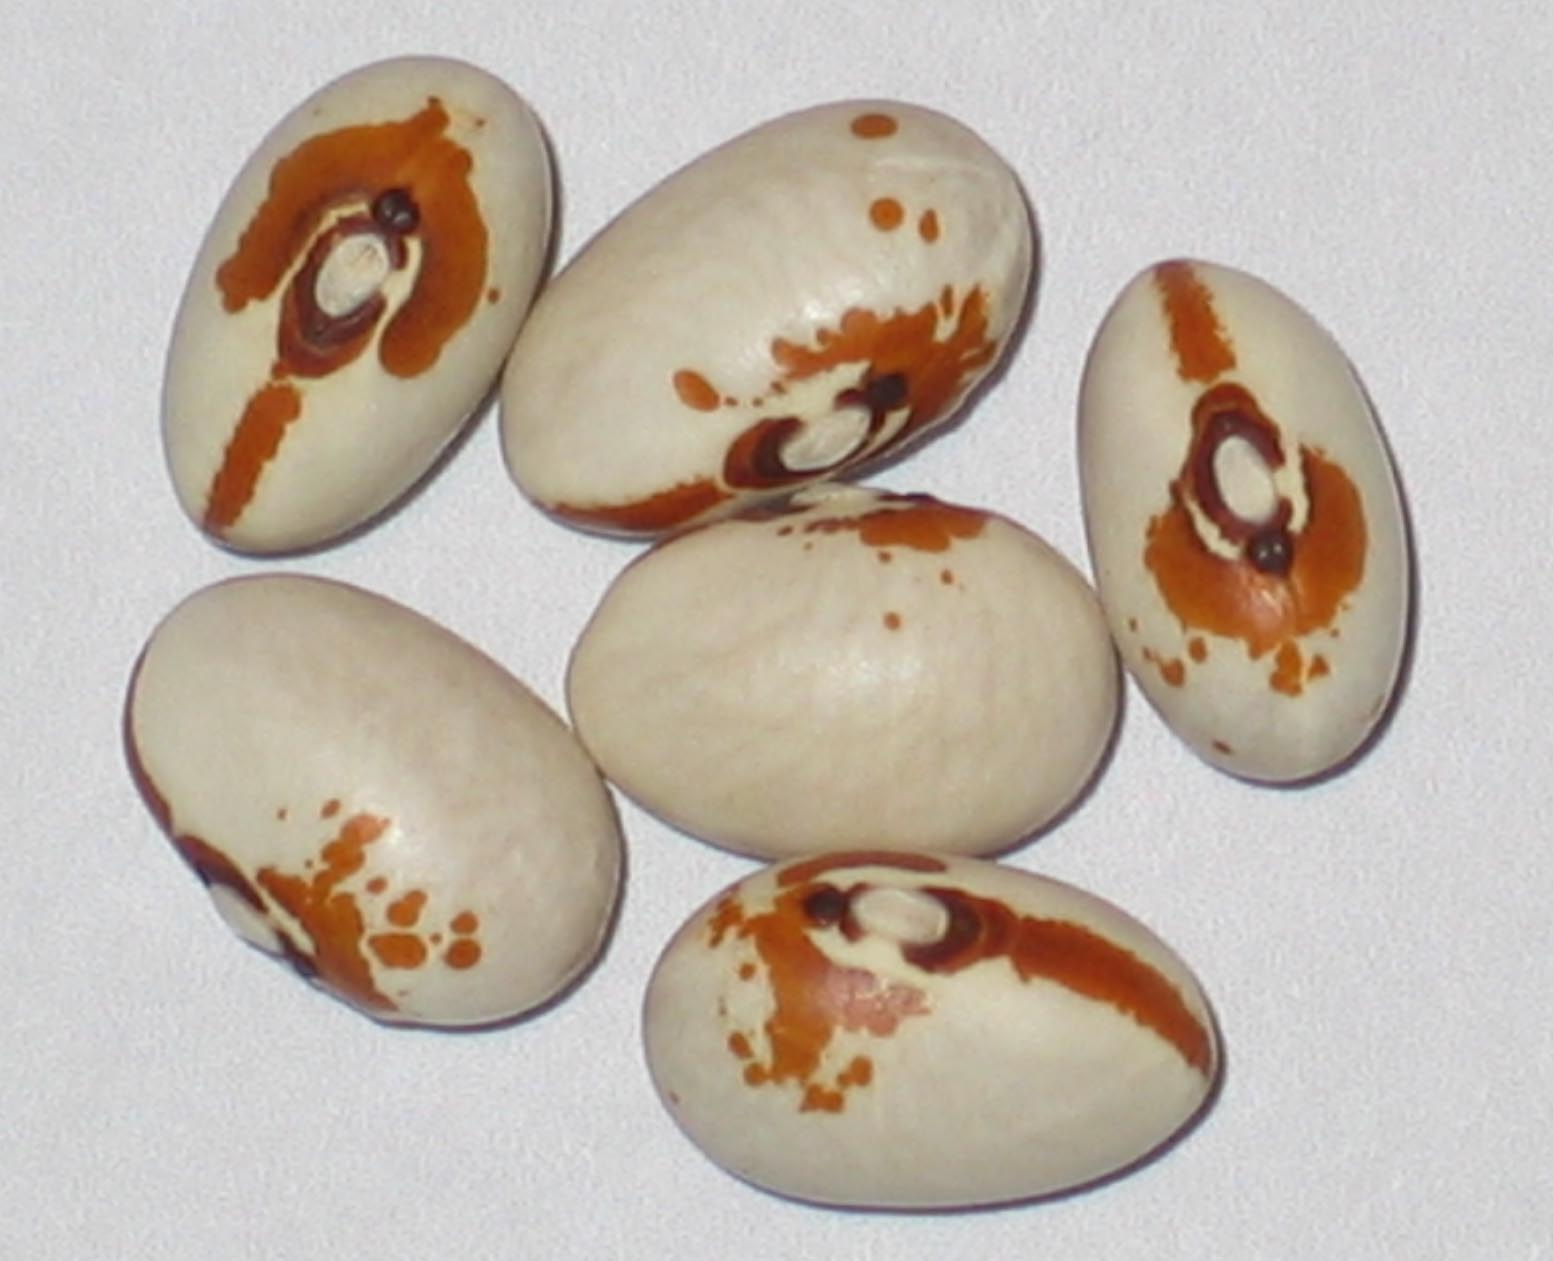 image of Kenearly beans